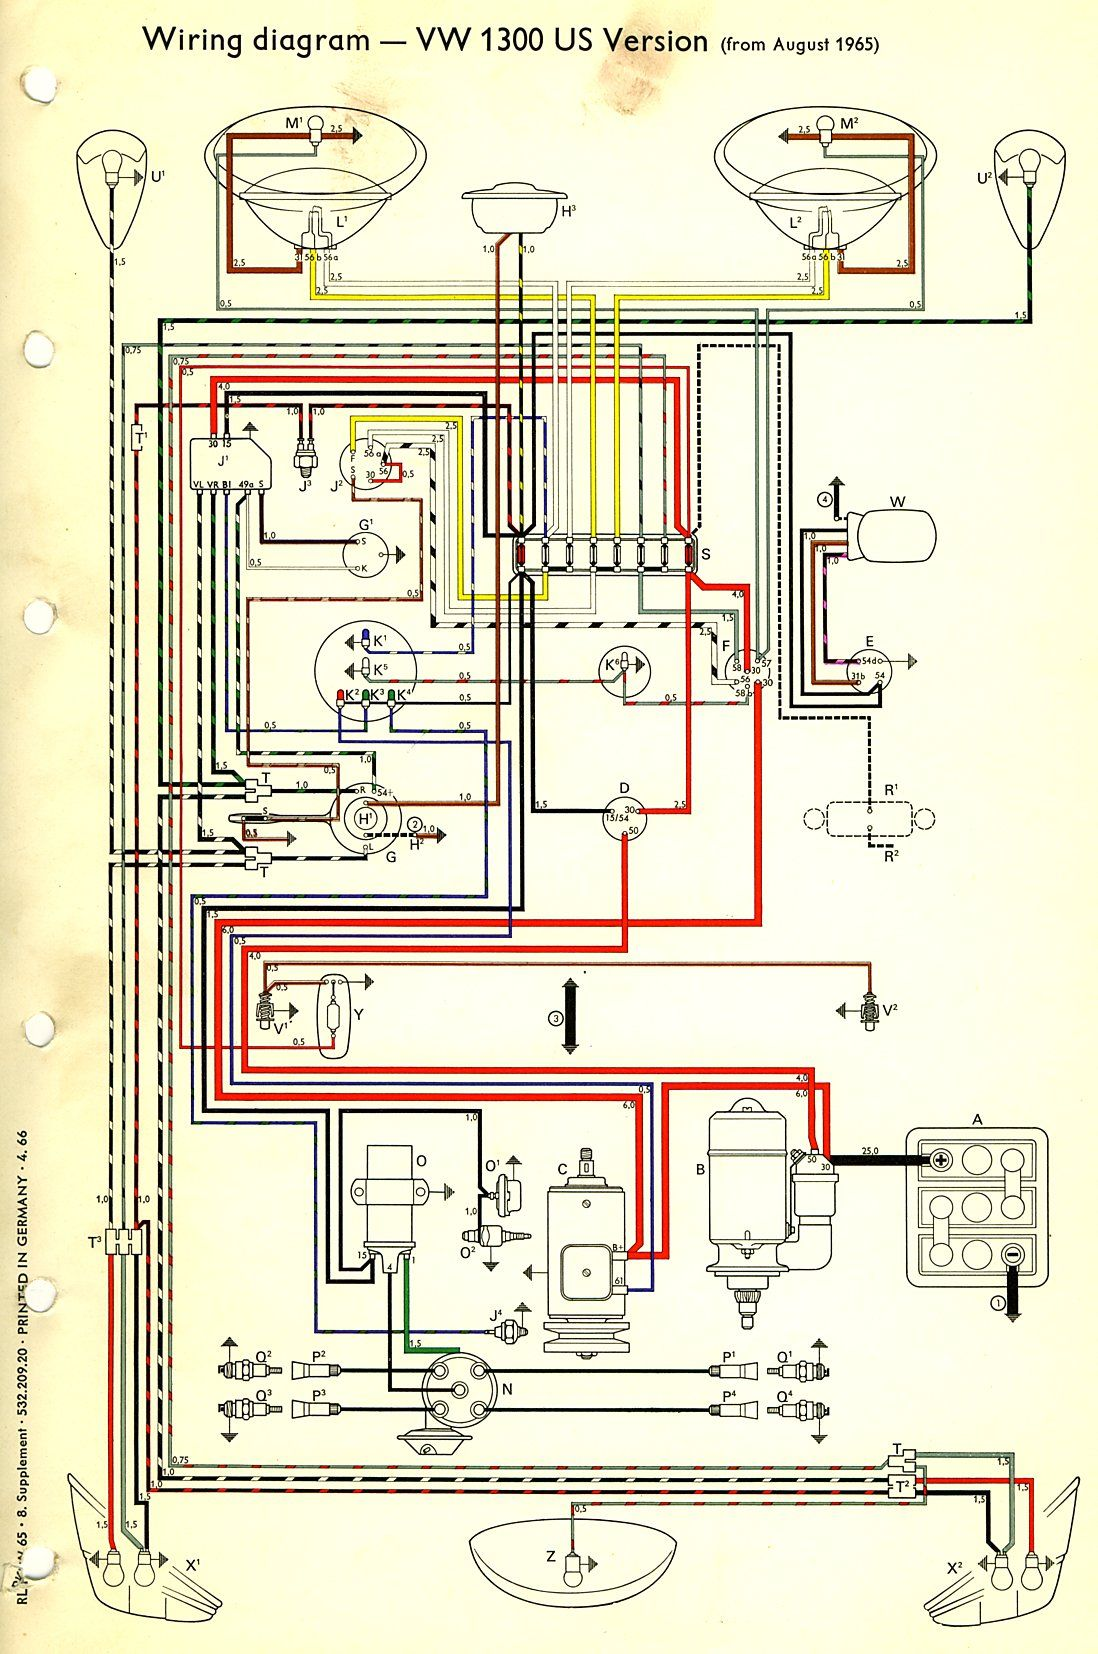 dune buggy wiring schematic google search 69 bug or 69 dune rh pinterest com Dune Buggy Engine Systems Schematics Dune Buggy with V8 Engine